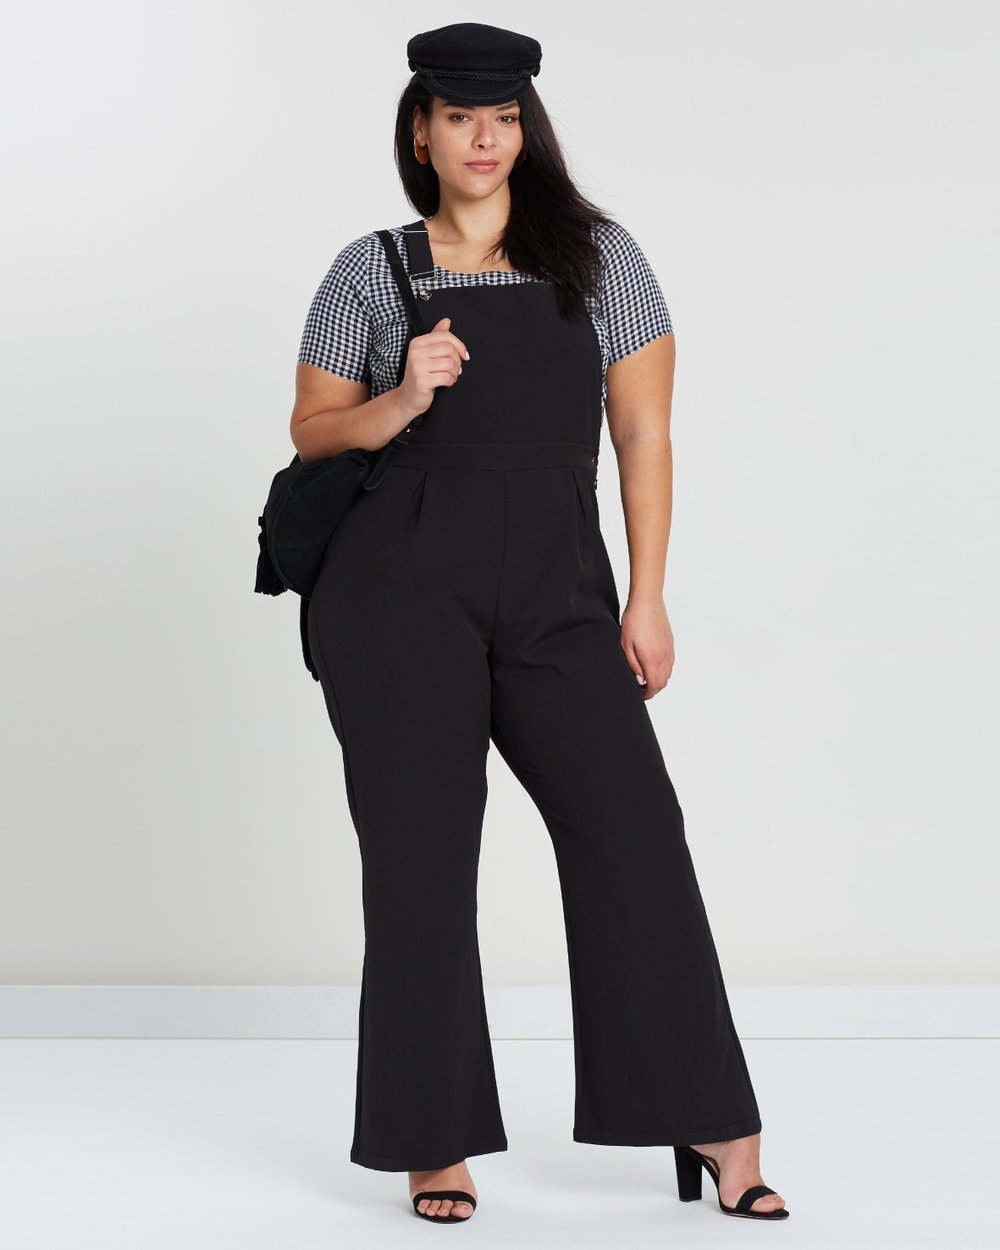 3e59f0ca5f58 ICONIC EXCLUSIVE - Yaz Dungarees by Atmos Here Curvy Online